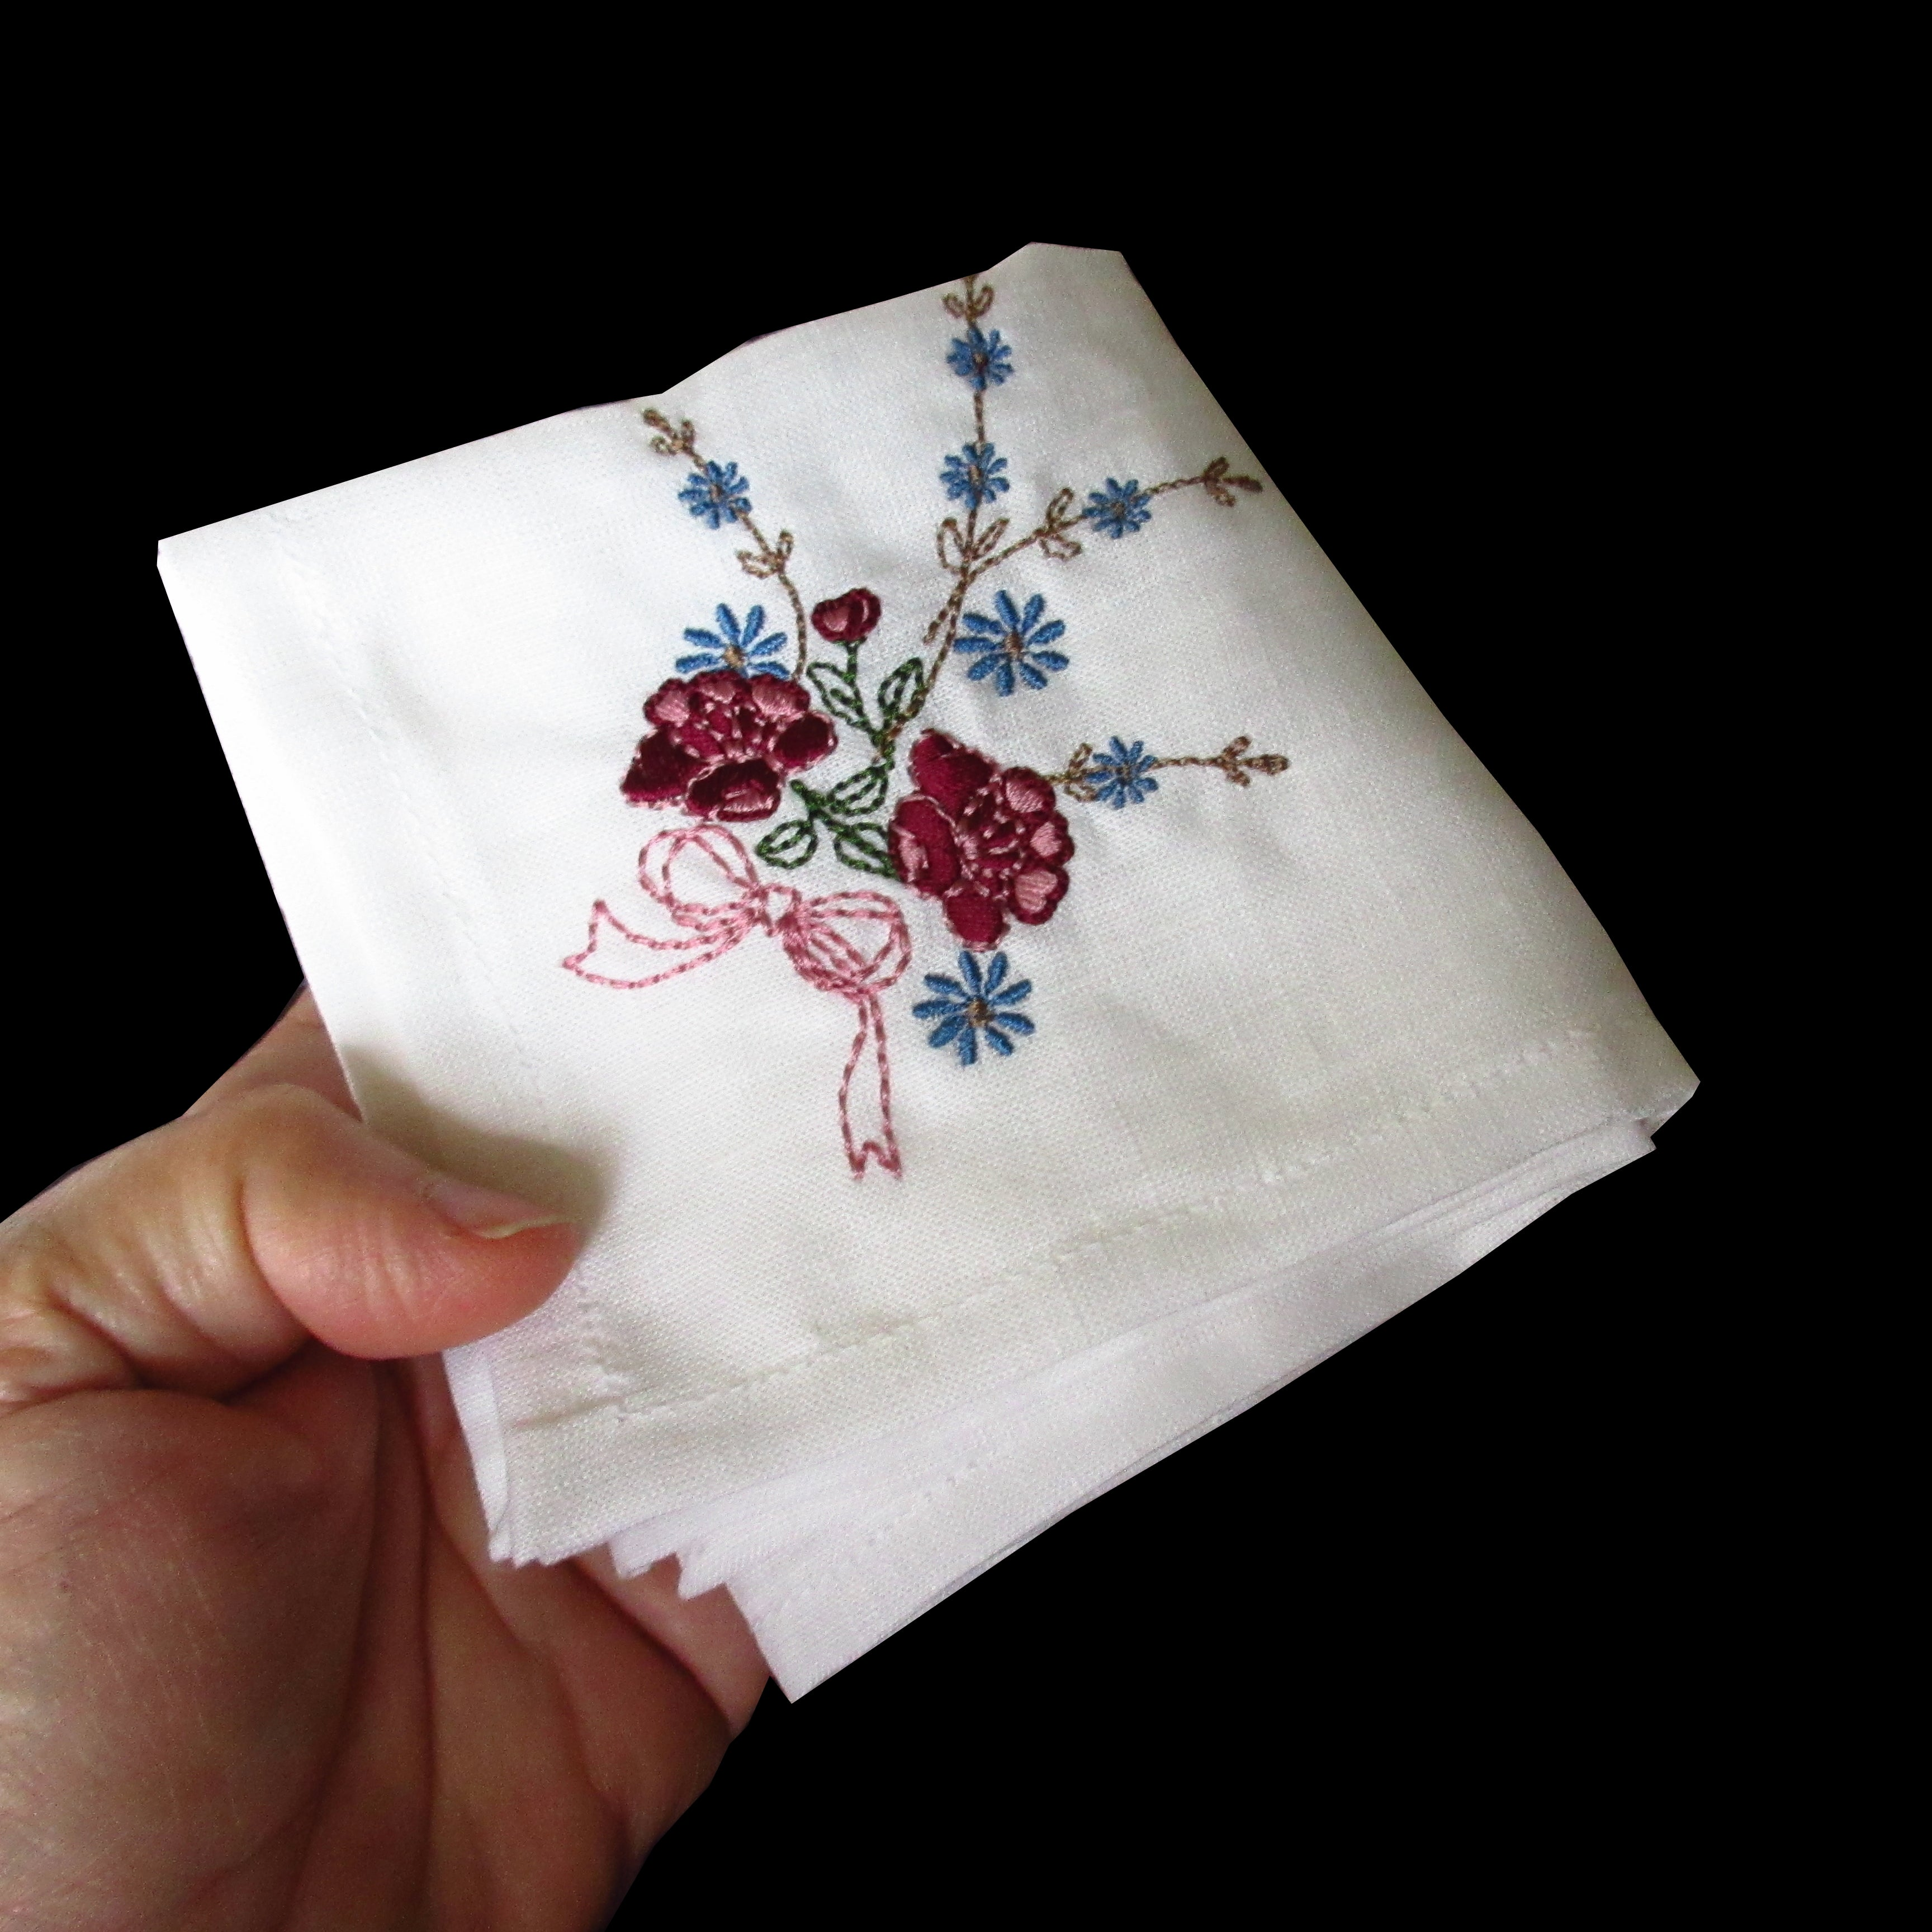 Linen Handkerchiefs Or Napkins With Vintage Floral Embroidery Set Of 3 Handes Of A Woman